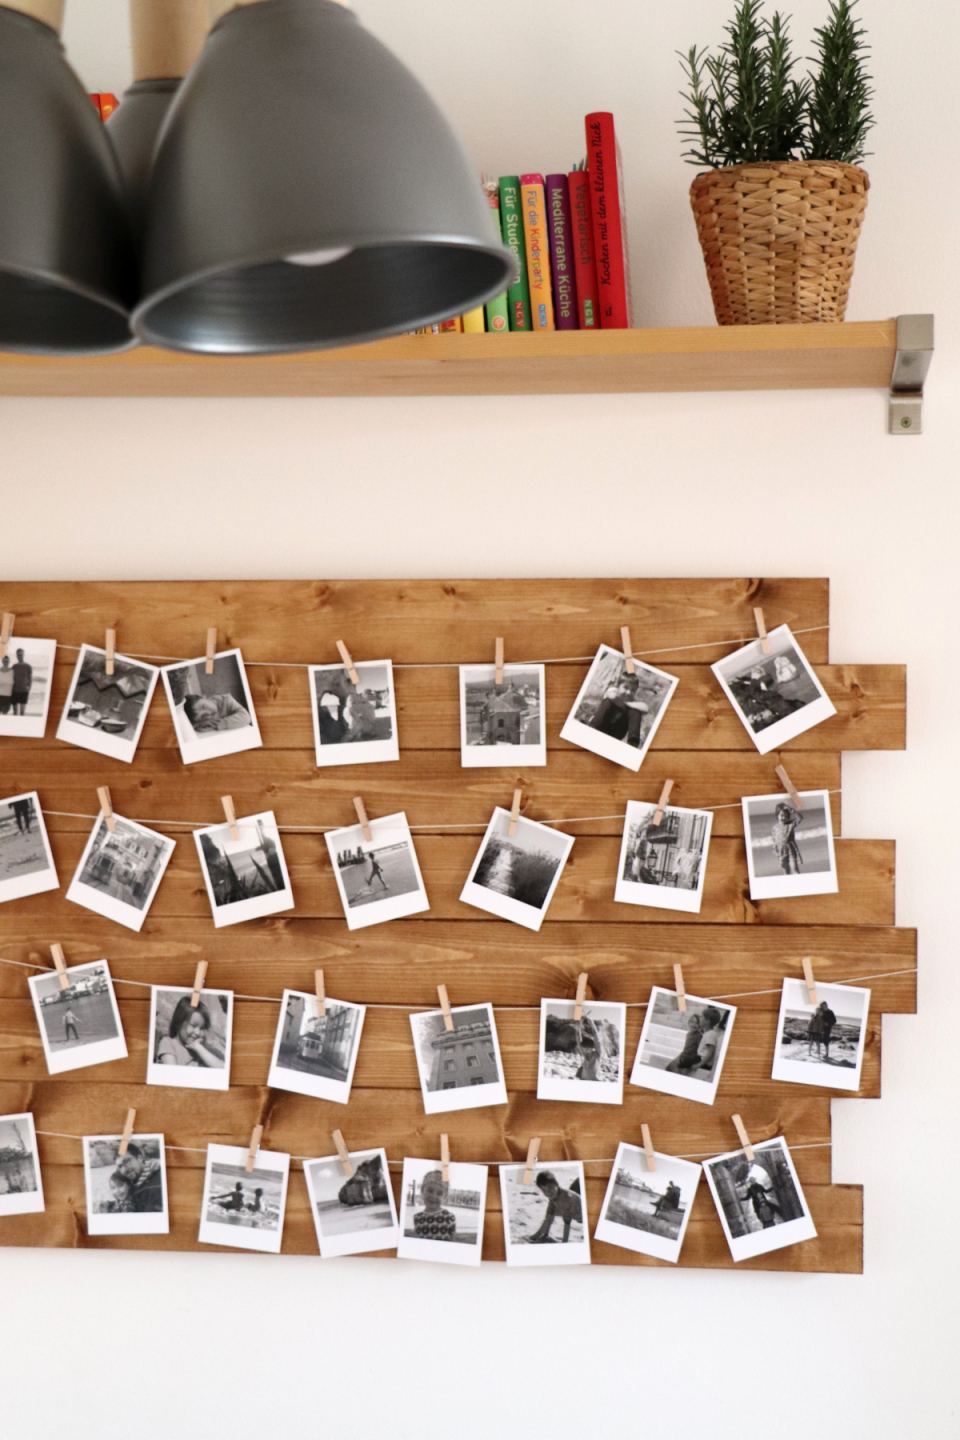 Diy Build A Photo Wall  Diy Photo Wall Build As A Kitchen von Deko Diy Wohnzimmer Photo